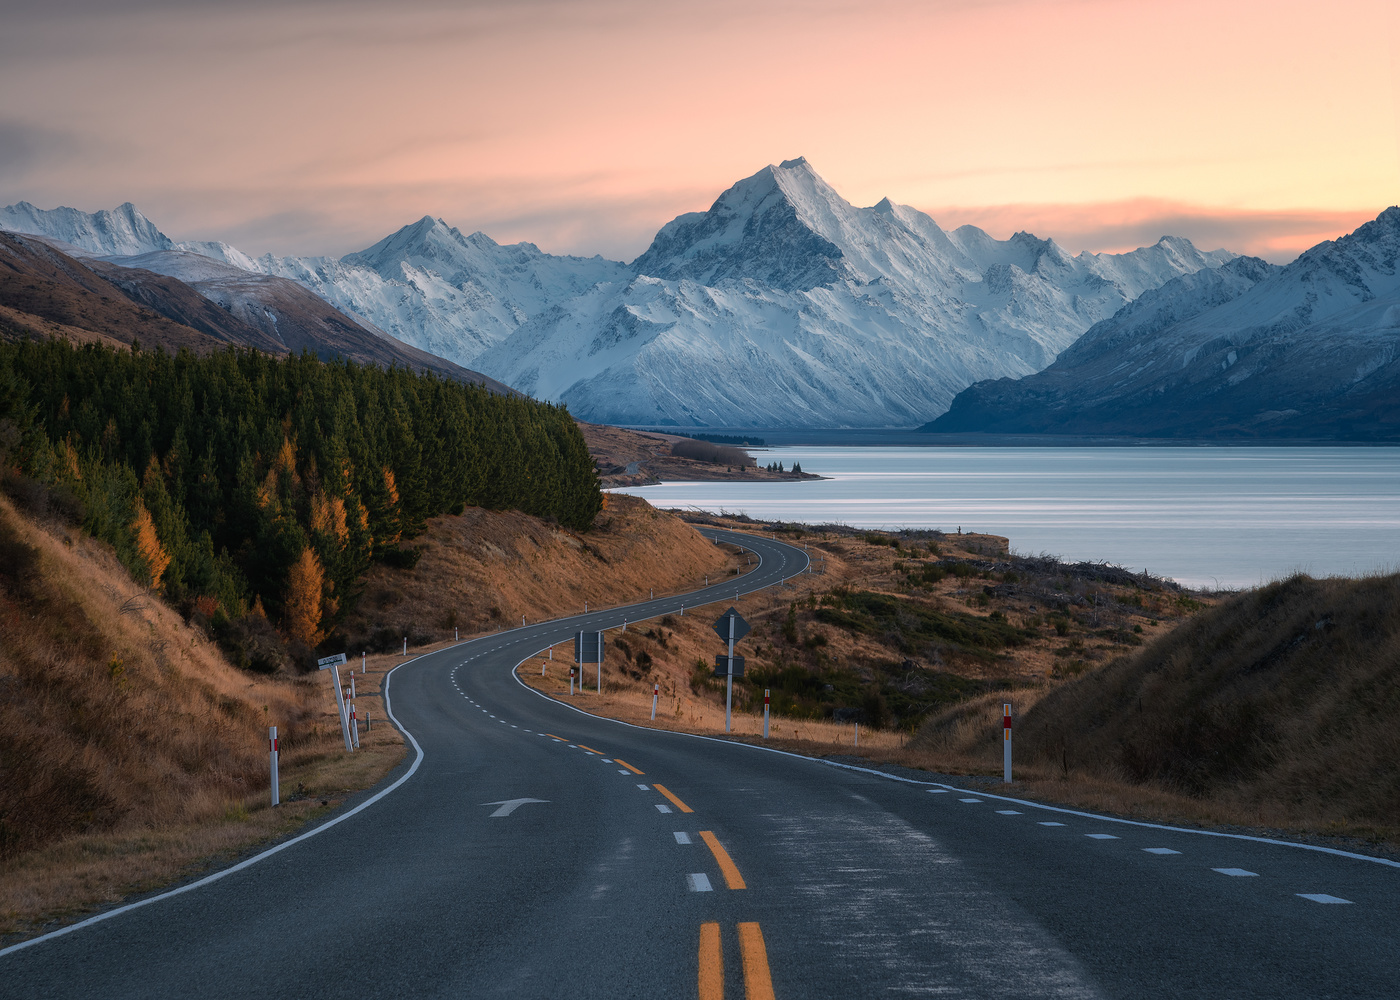 Highway 80, New Zealand by Chris Wain